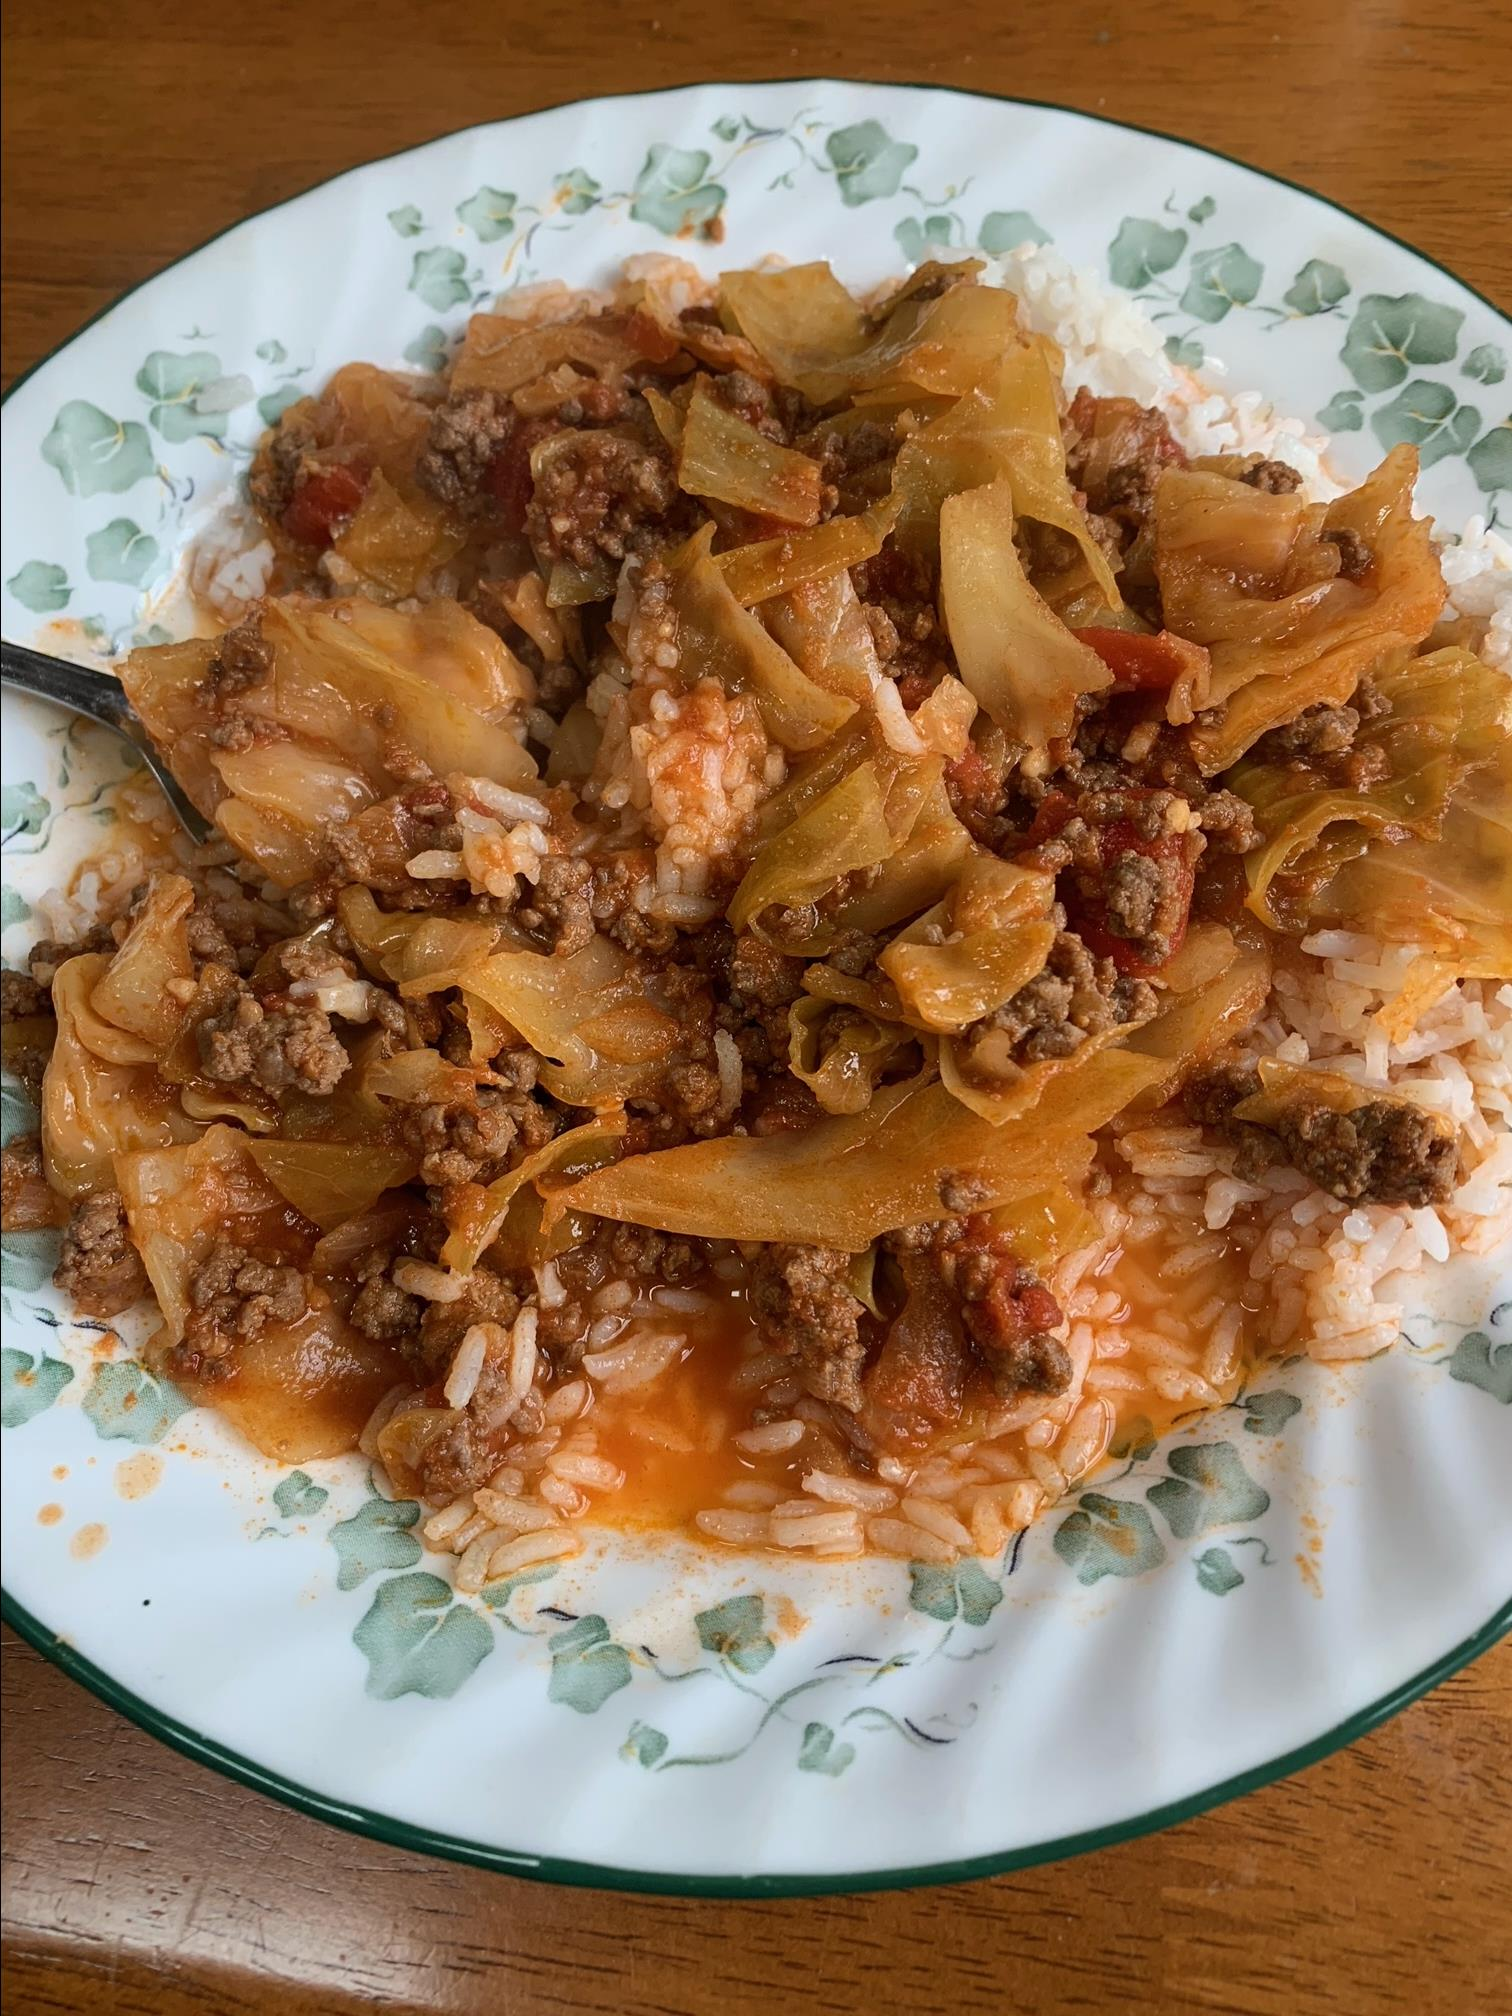 Grandma Elaine's Unstuffed Sweet and Sour Cabbage